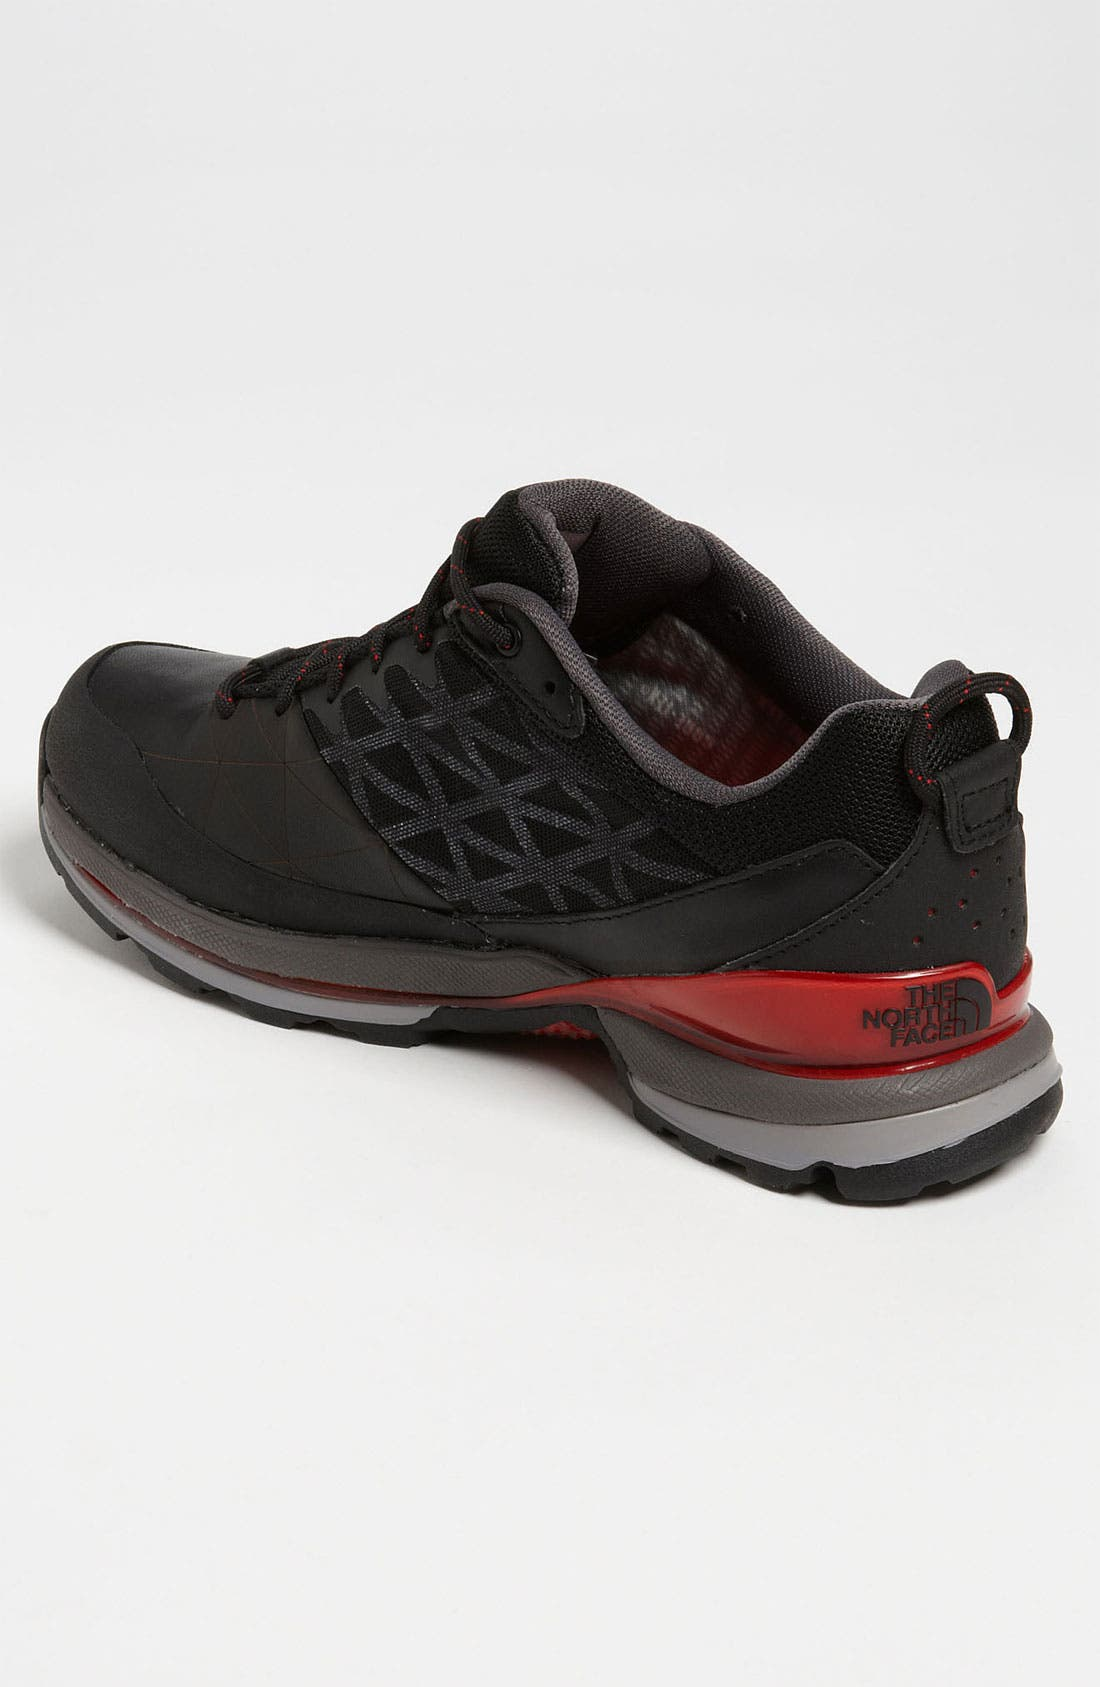 Alternate Image 2  - The North Face 'Havoc Low GTX XCR' Hiking Shoes (Men)